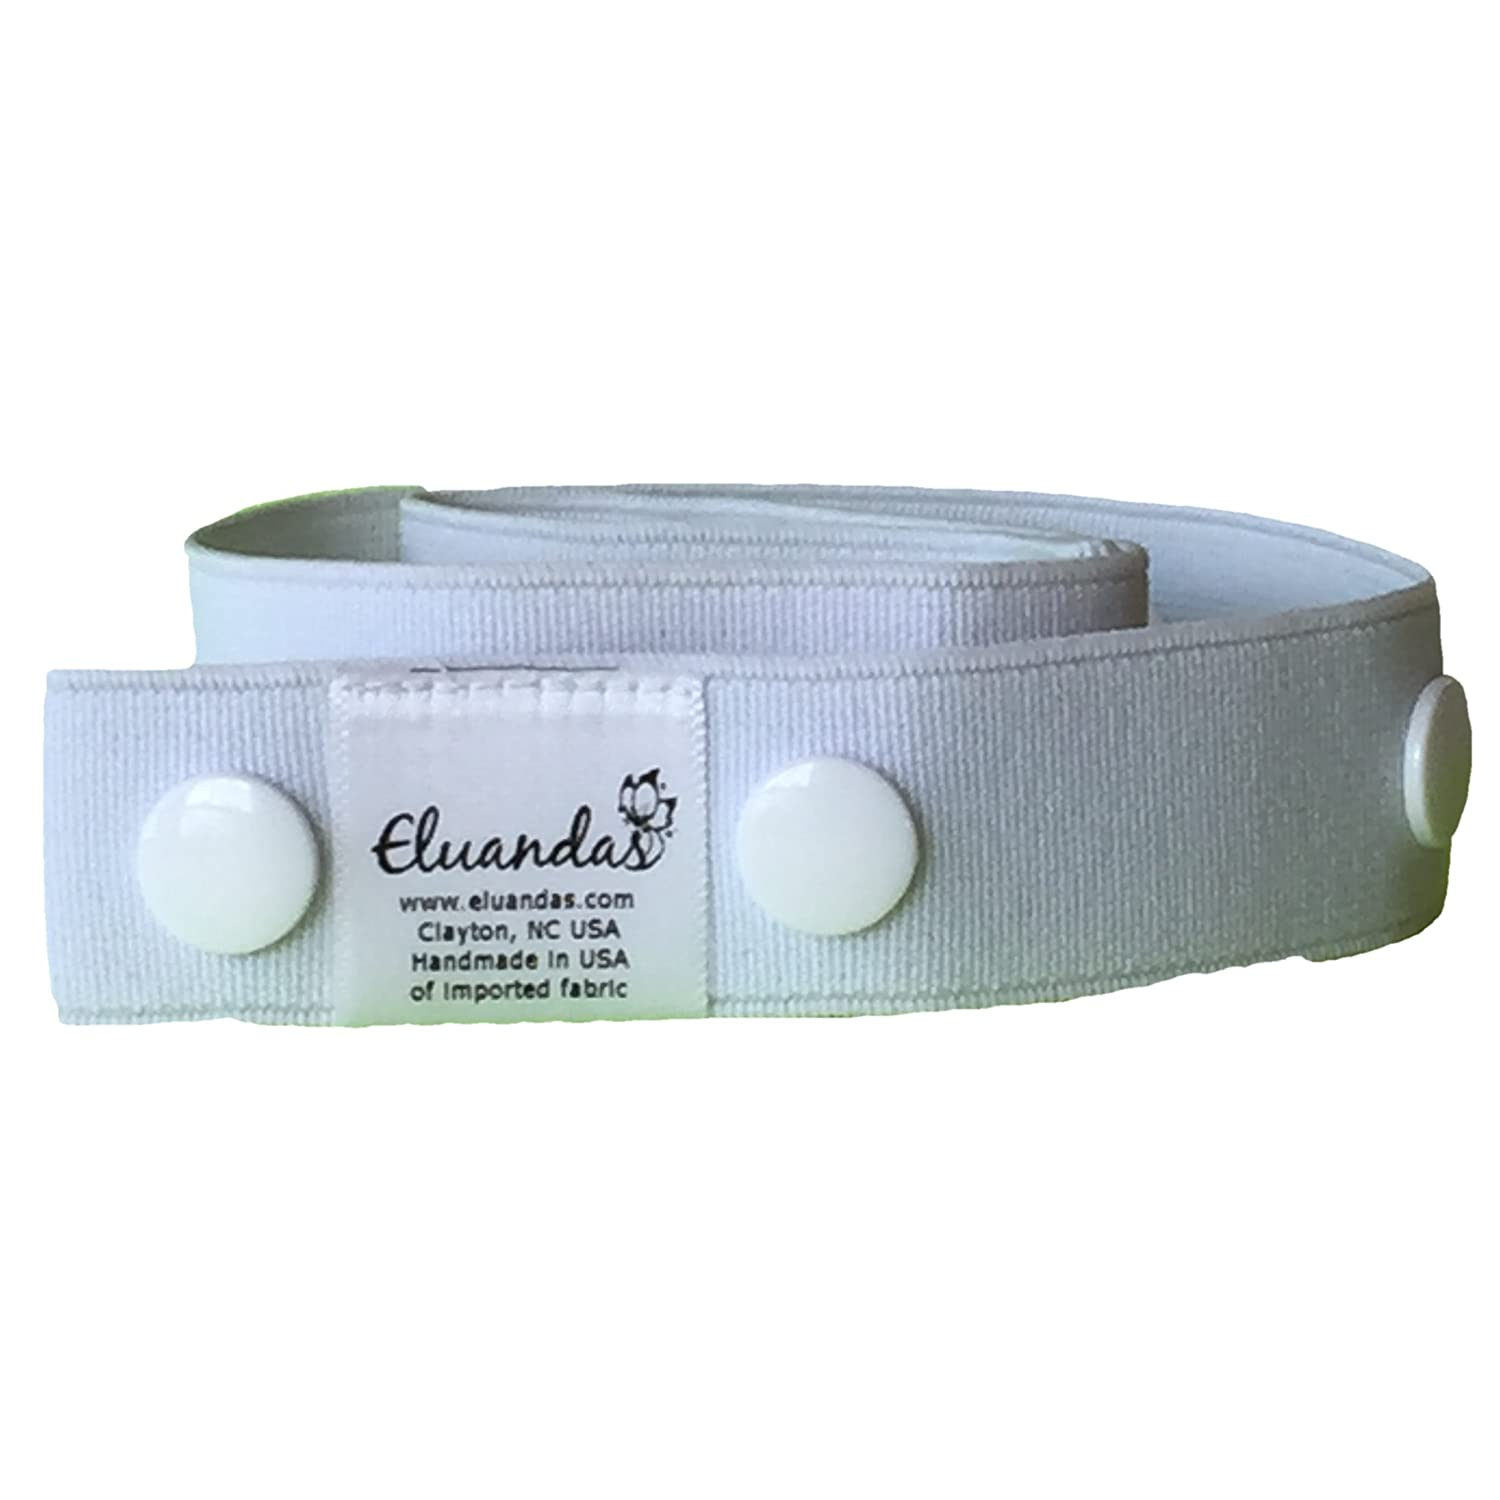 Elu Clips Solid Colors Elastic Snap Belt for Kids and Adults no front closure